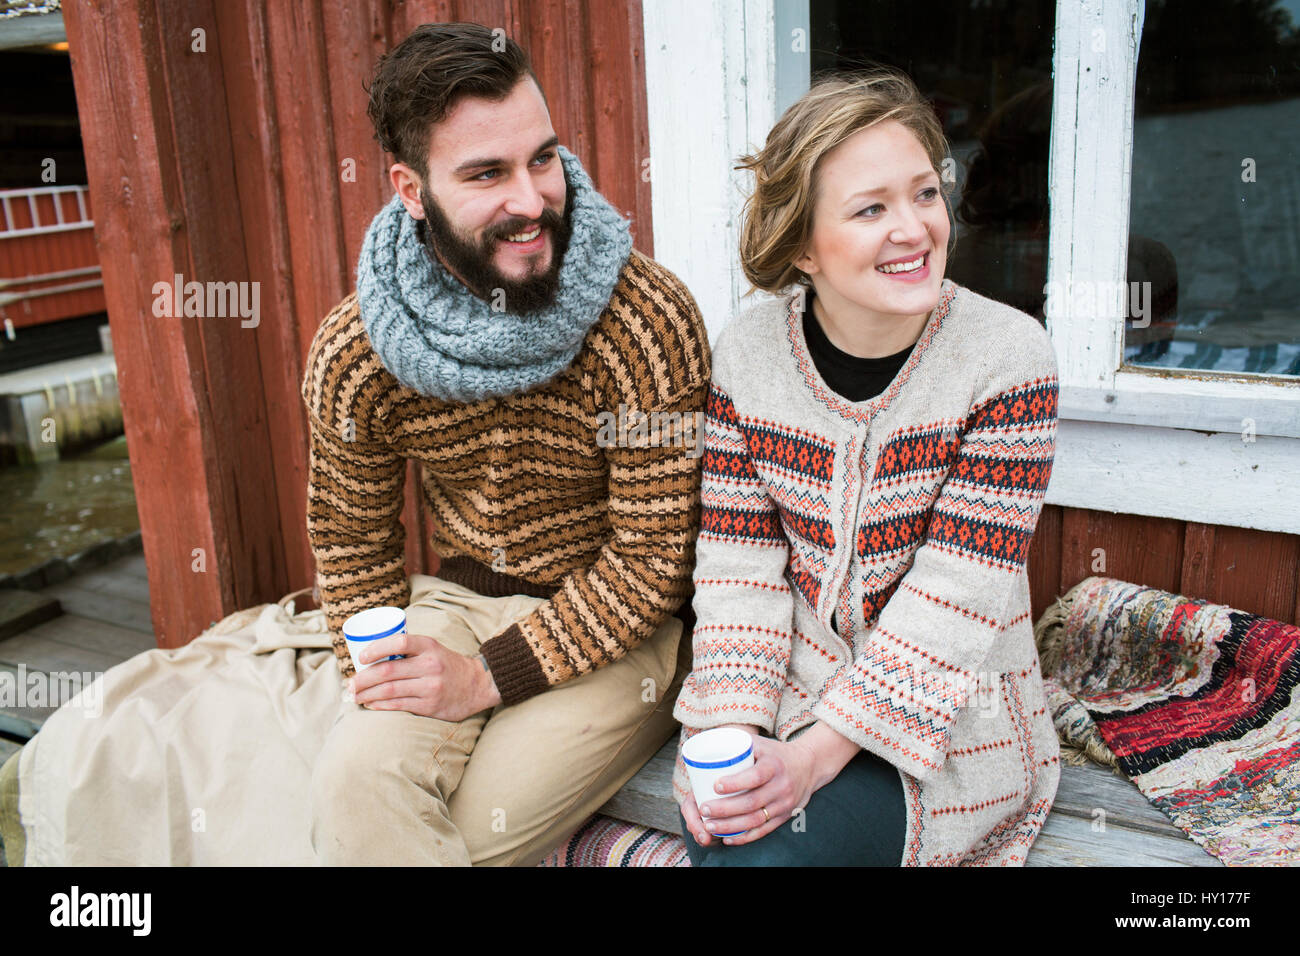 Sweden, Young couple sitting on bench - Stock Image